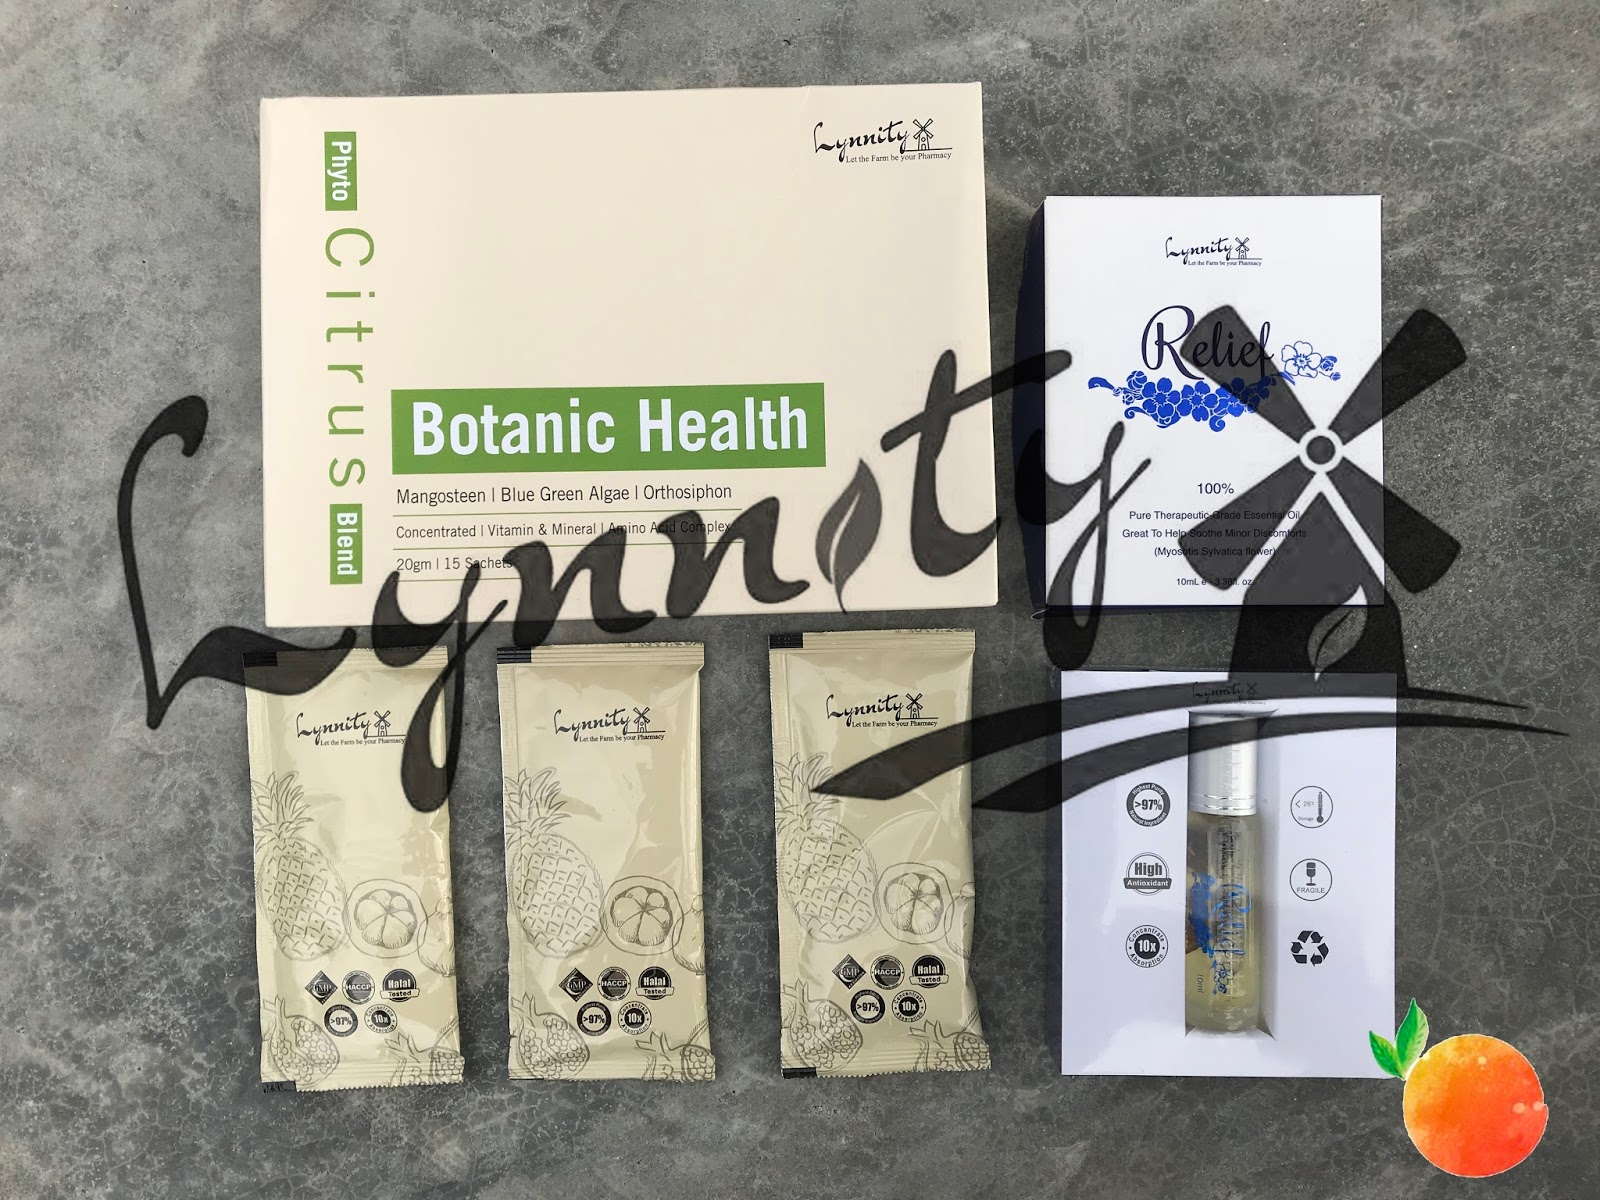 [Health Review] Lynnity Botanic Health & Lynnity Relief for Your Daily Routine Health Care In Life